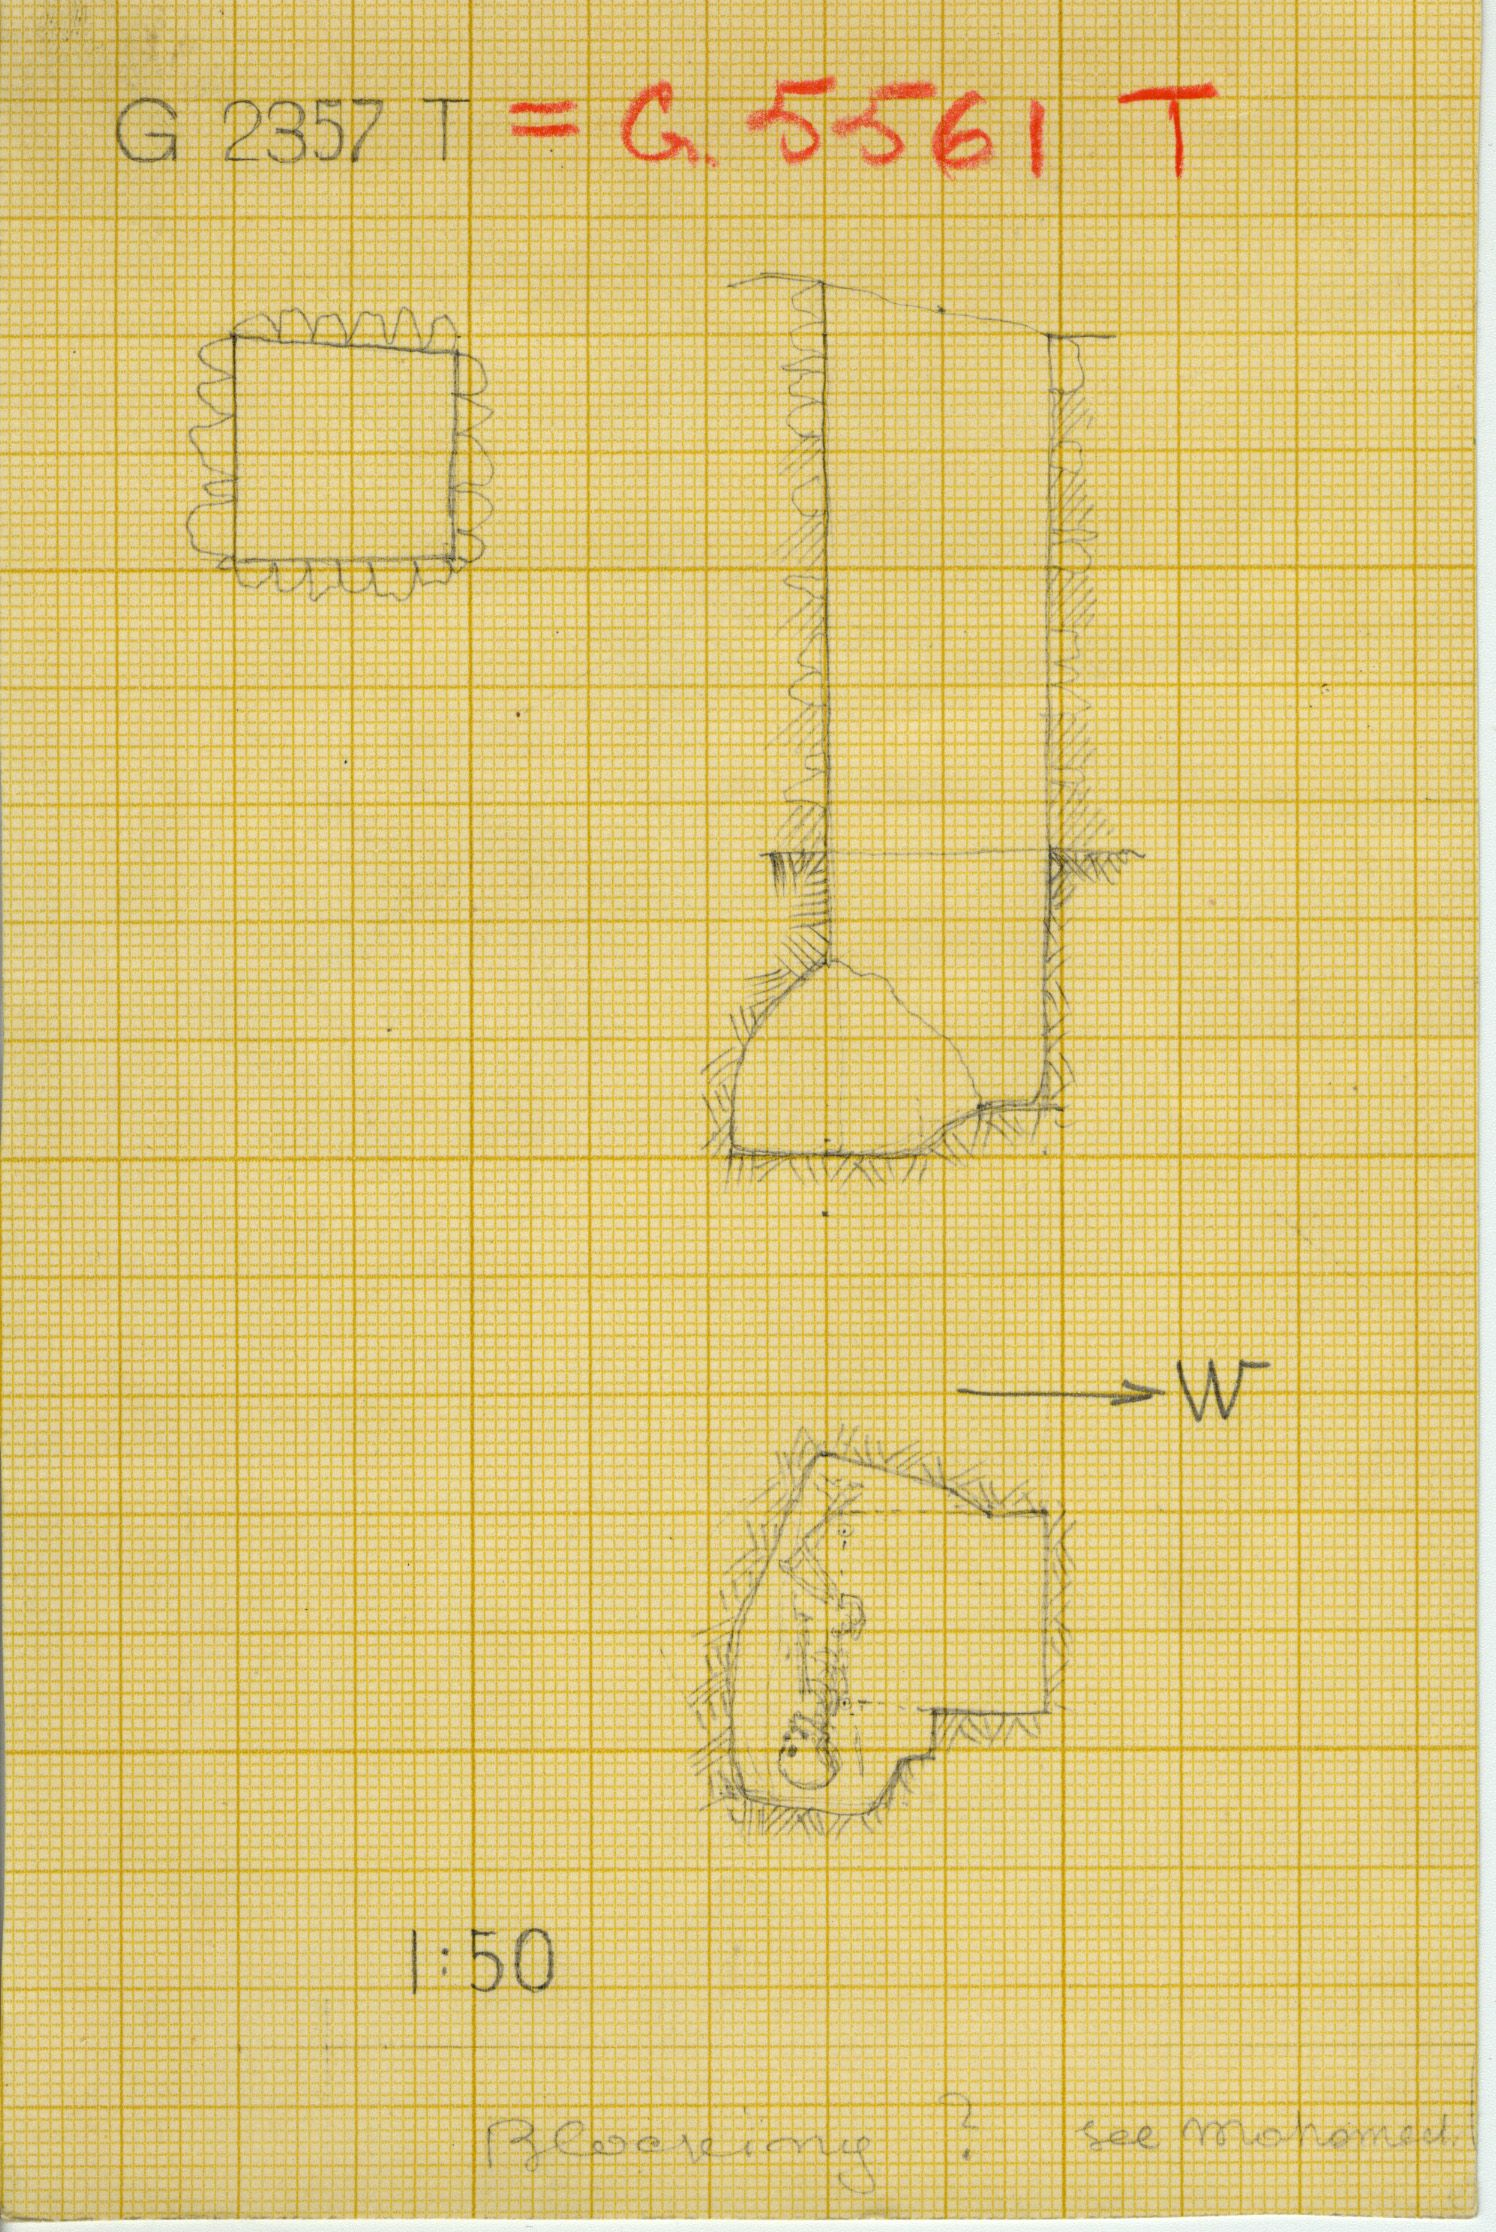 Maps and plans: G 2357 T = G 5561, Shaft T